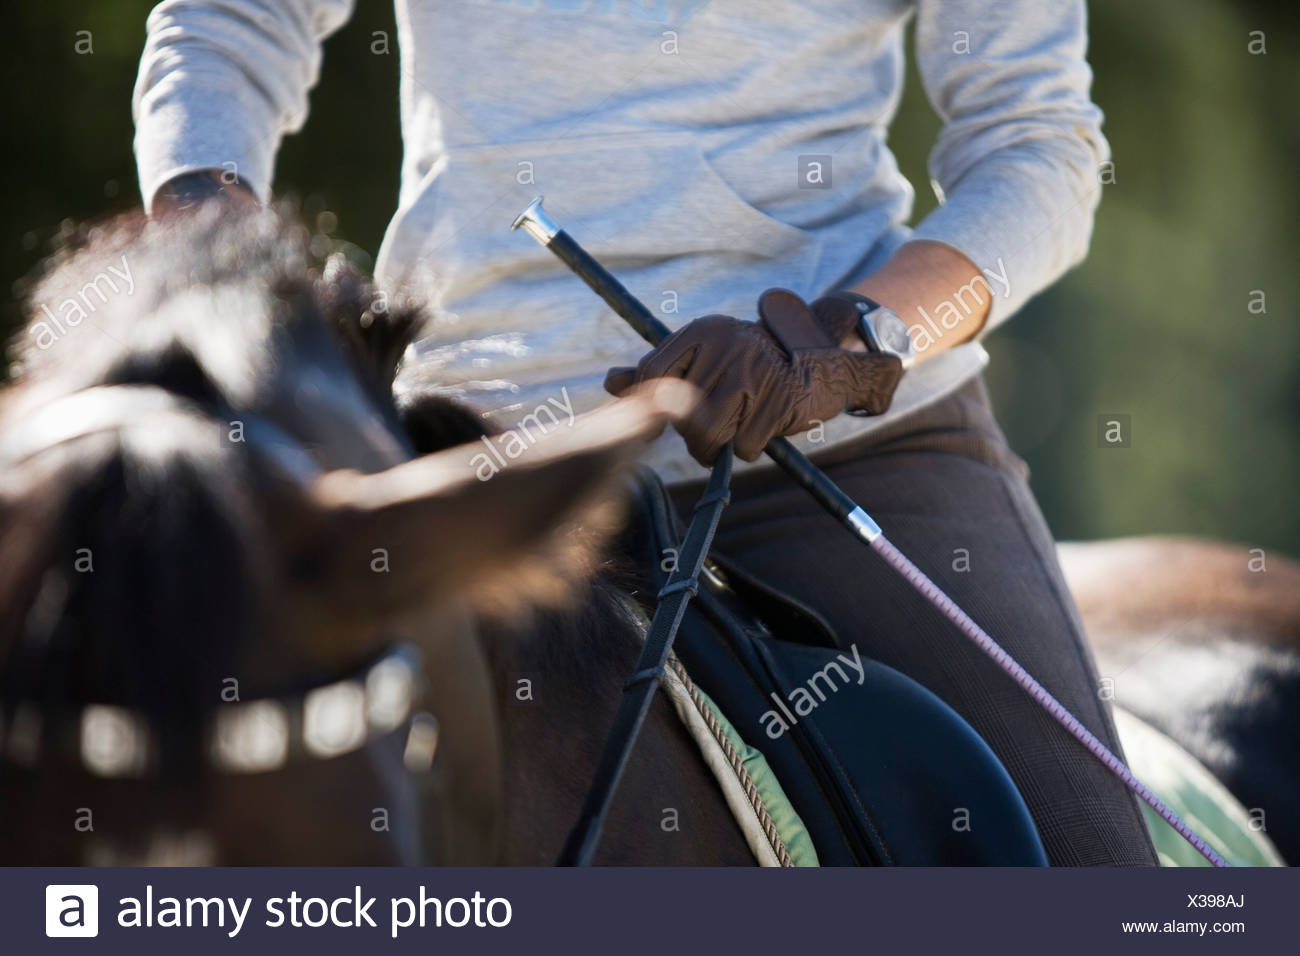 detail of woman on horse - Stock Image